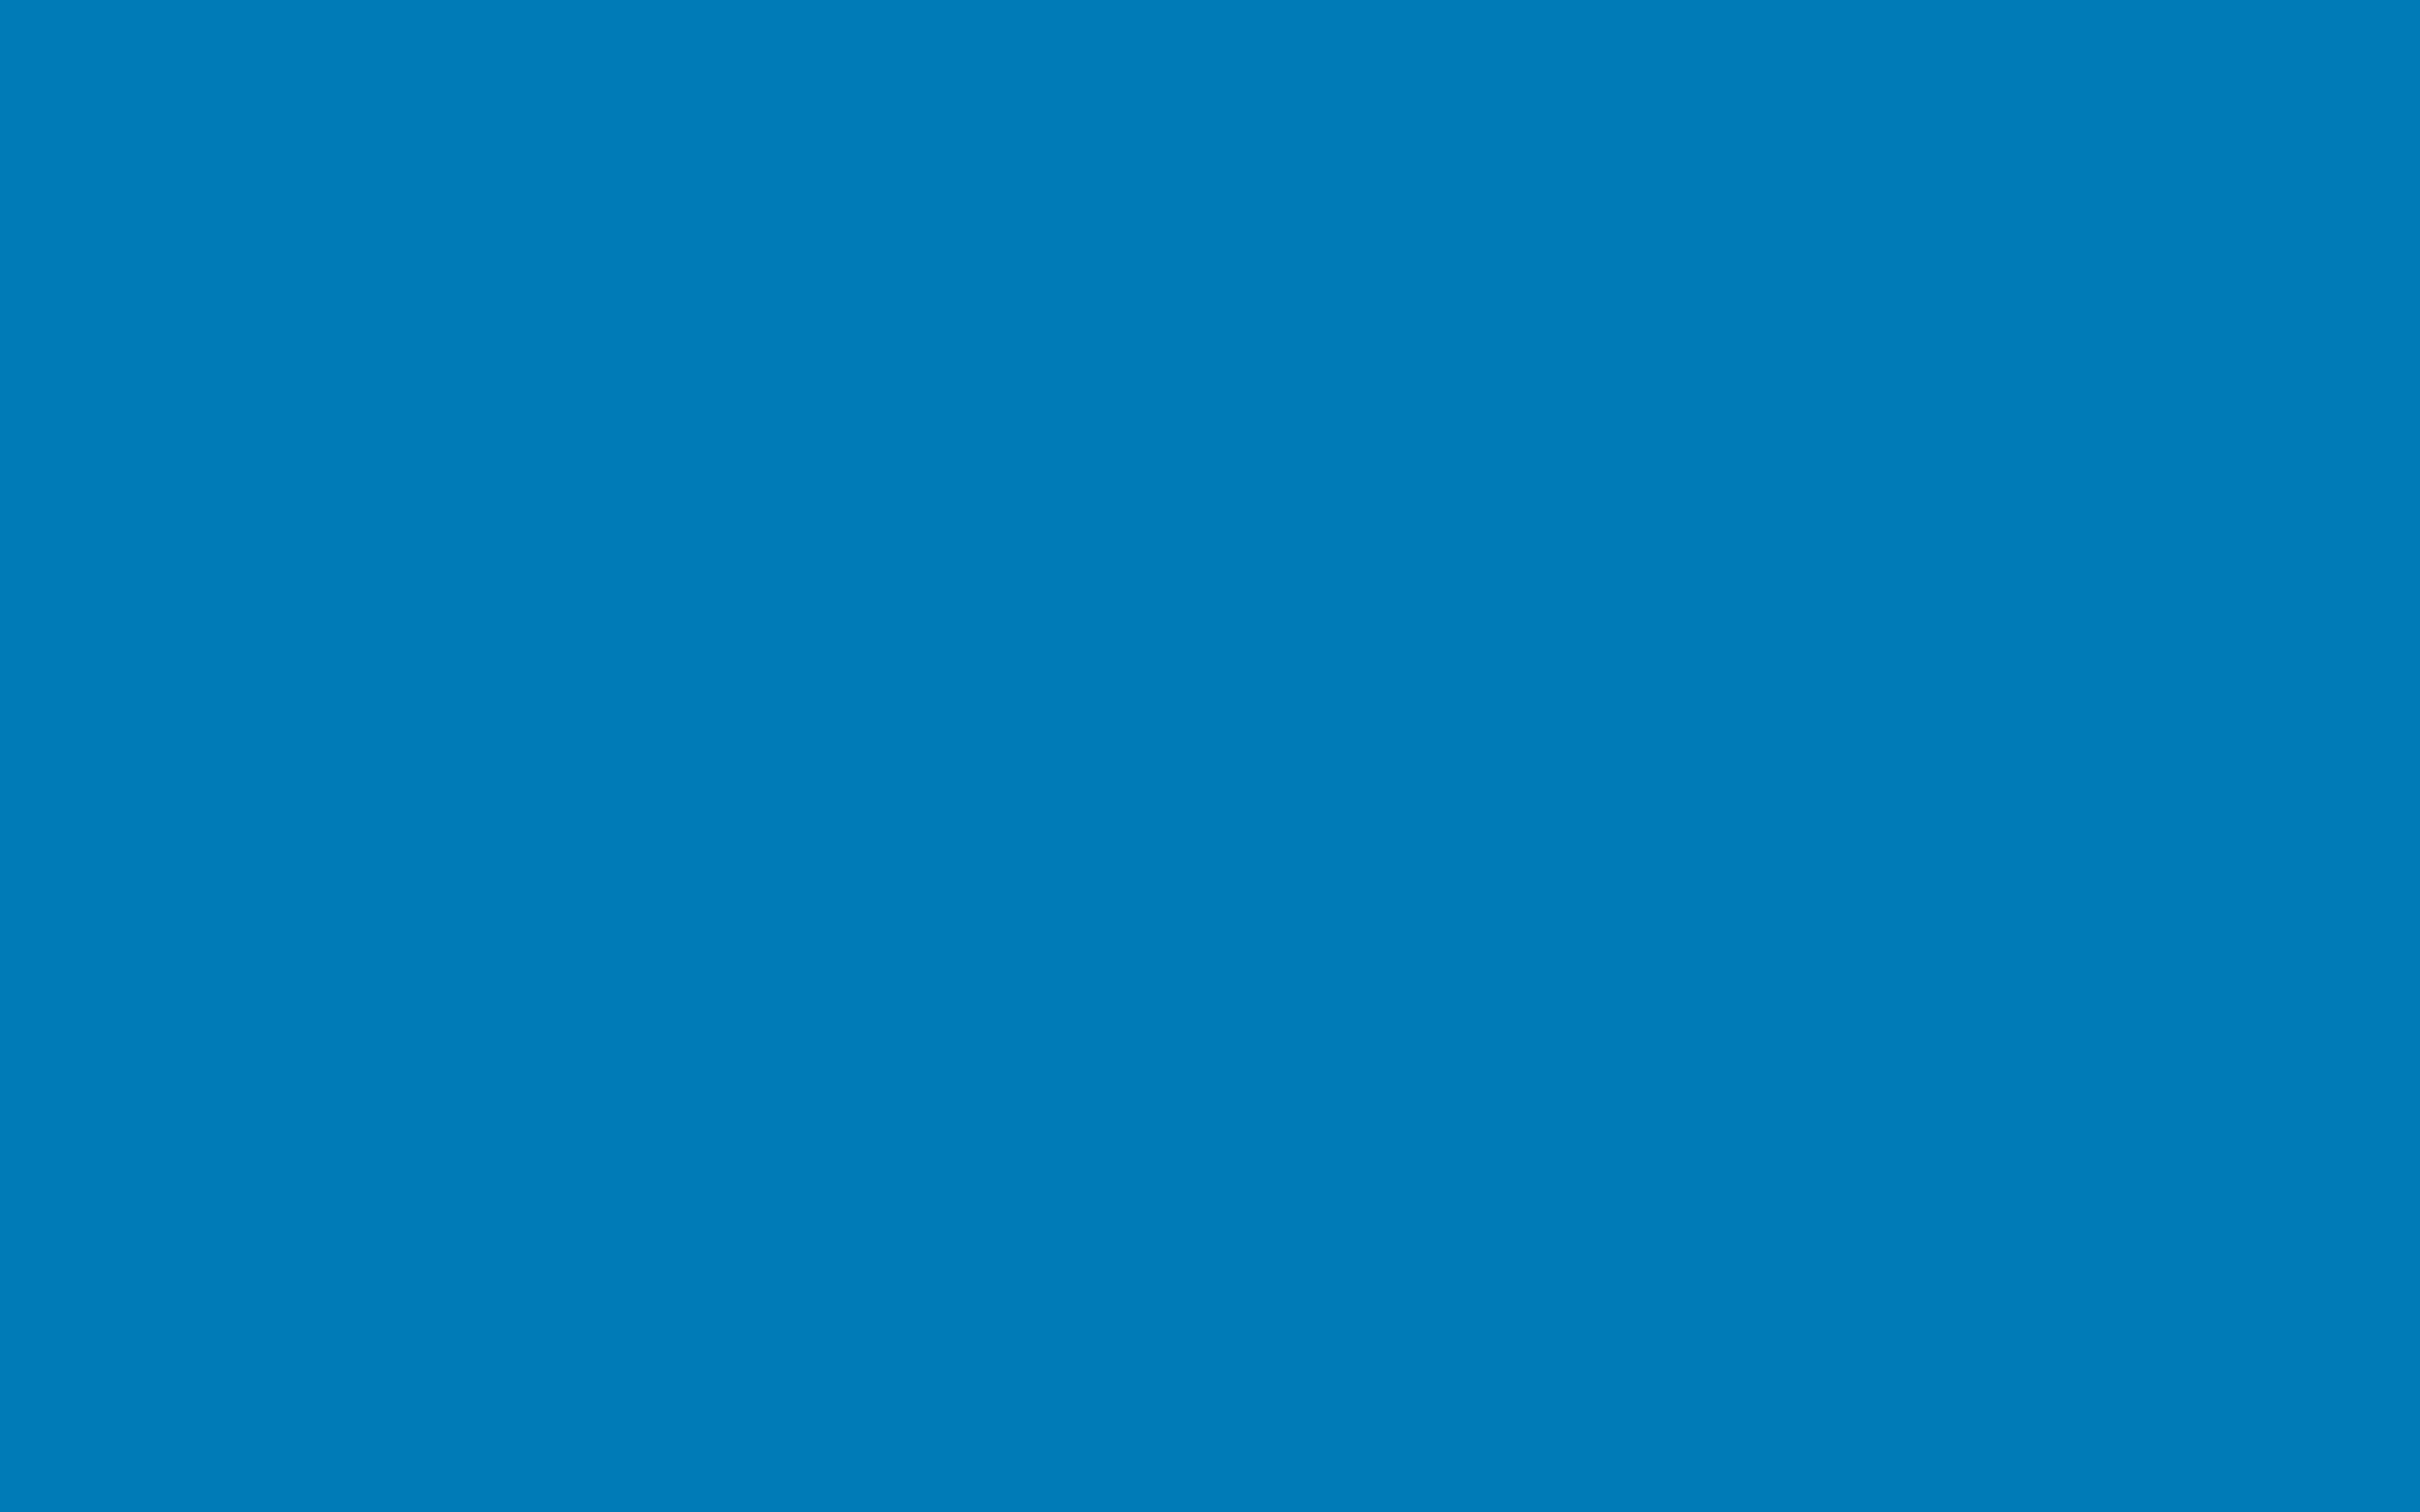 2880x1800 Star Command Blue Solid Color Background